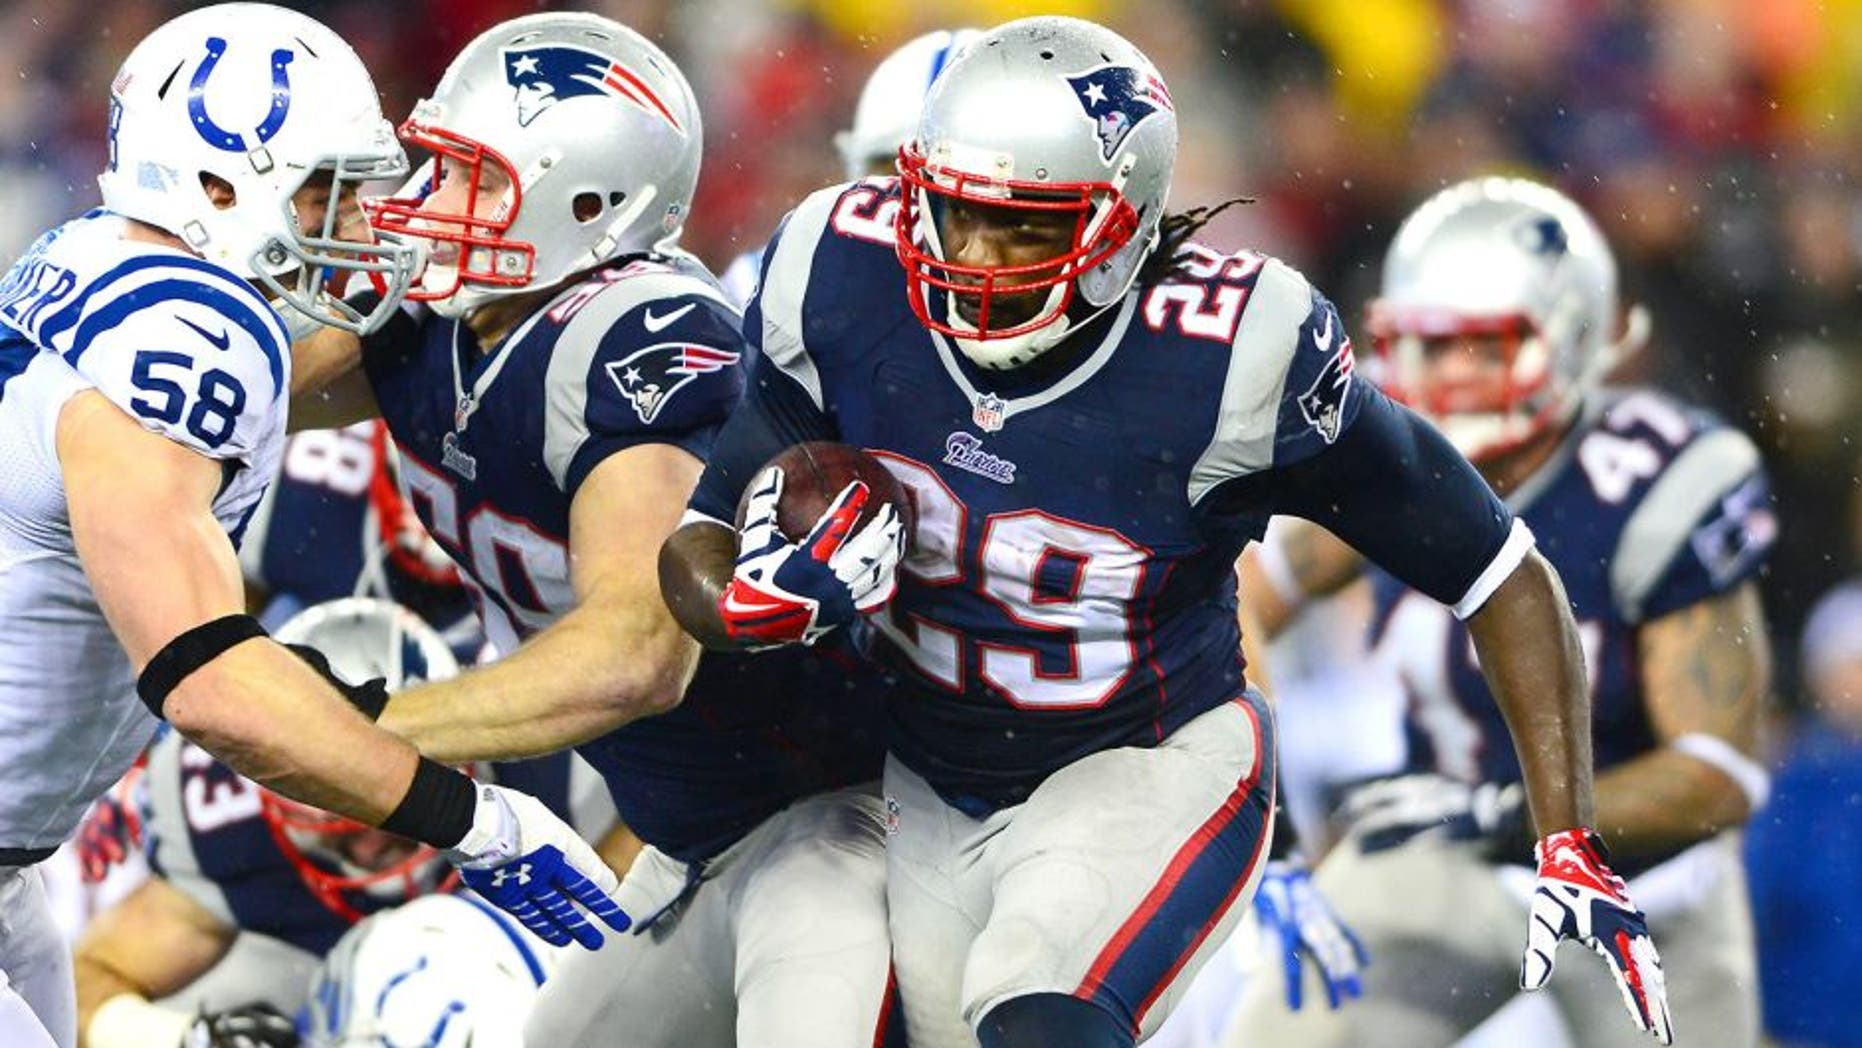 Jan 11, 2014; Foxborough, MA, USA; New England Patriots running back LeGarrette Blount (29) runs the ball during the second quarter of the 2013 AFC divisional playoff football game against the Indianapolis Colts at Gillette Stadium. Mandatory Credit: Andrew Weber-USA TODAY Sports